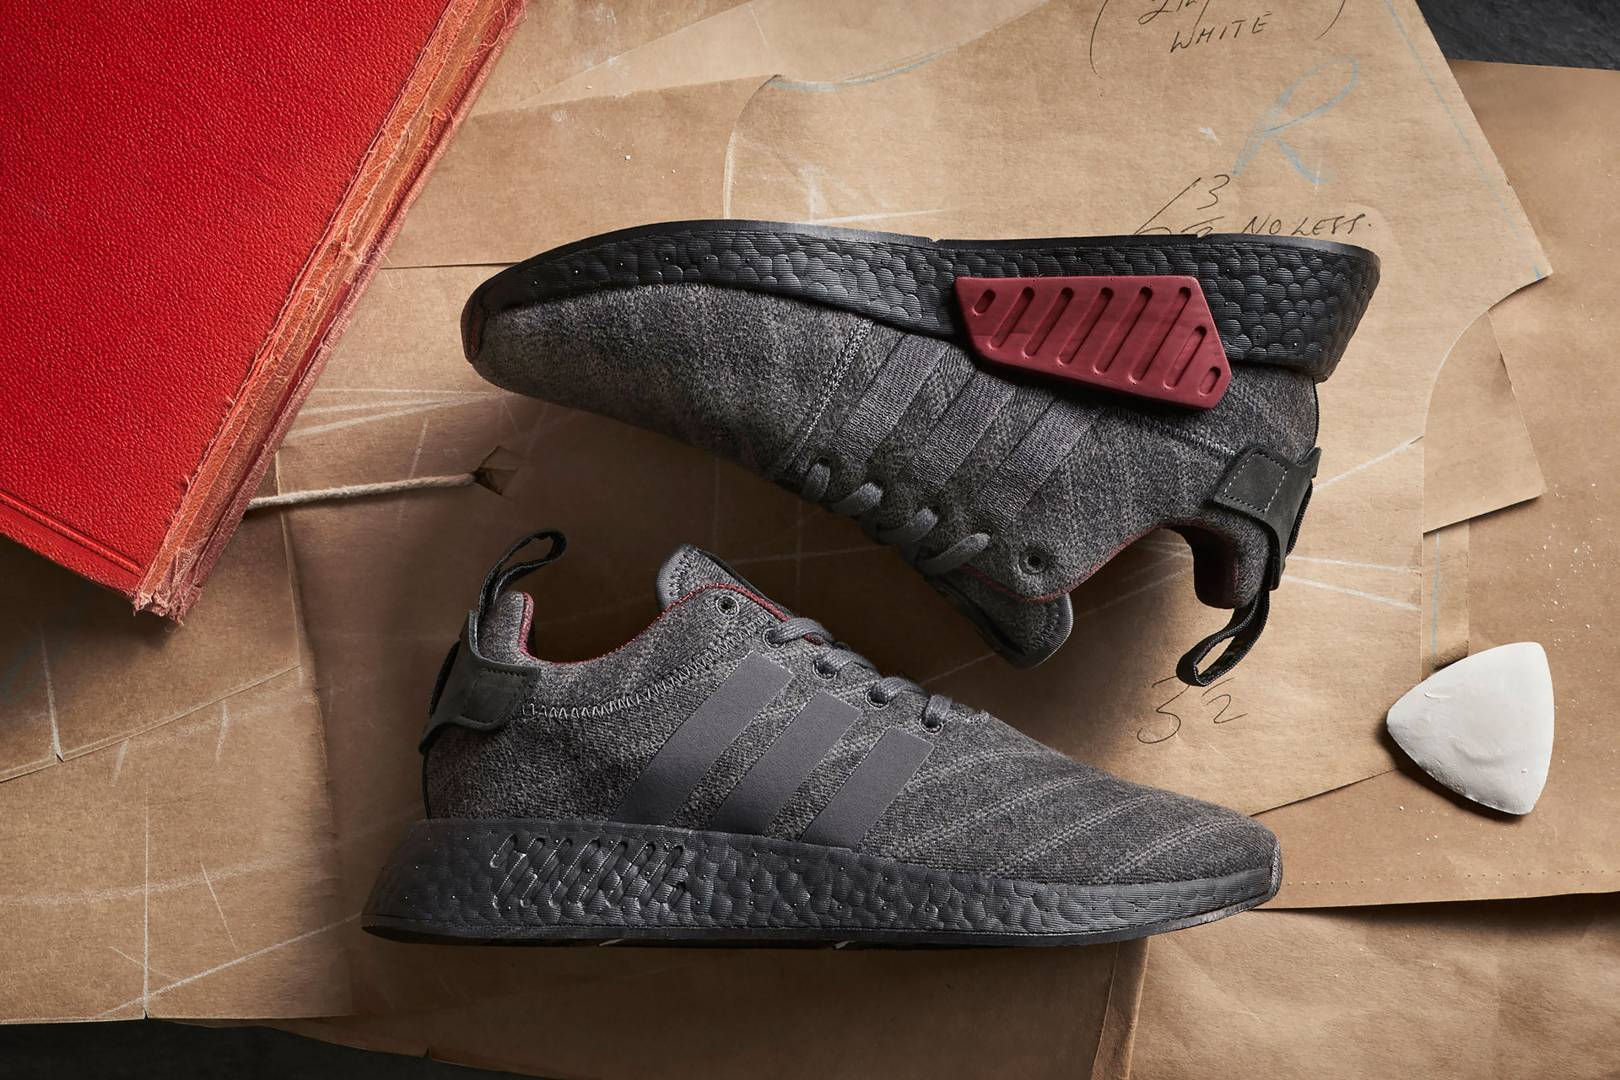 d697693f59f67 Adidas Originals x Henry Poole  Trainers with the Savile Row treatment